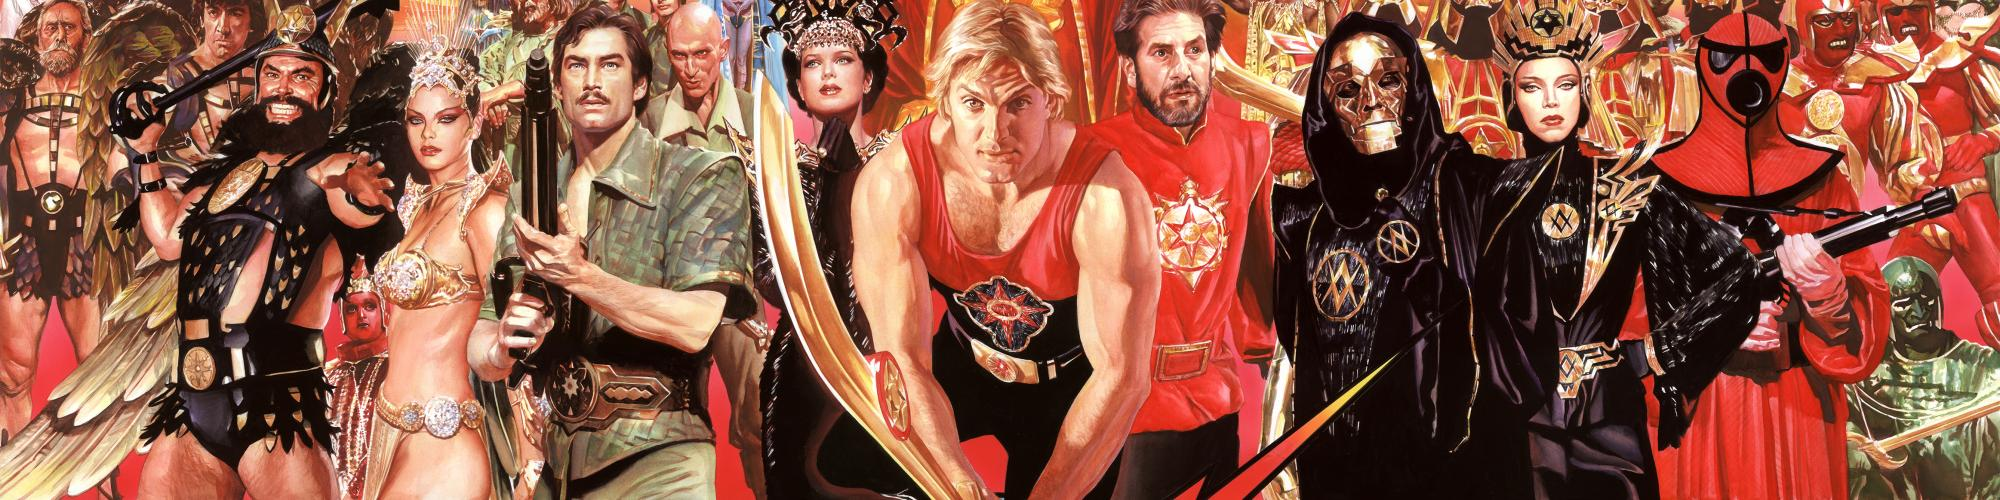 Flash Gordon at 40